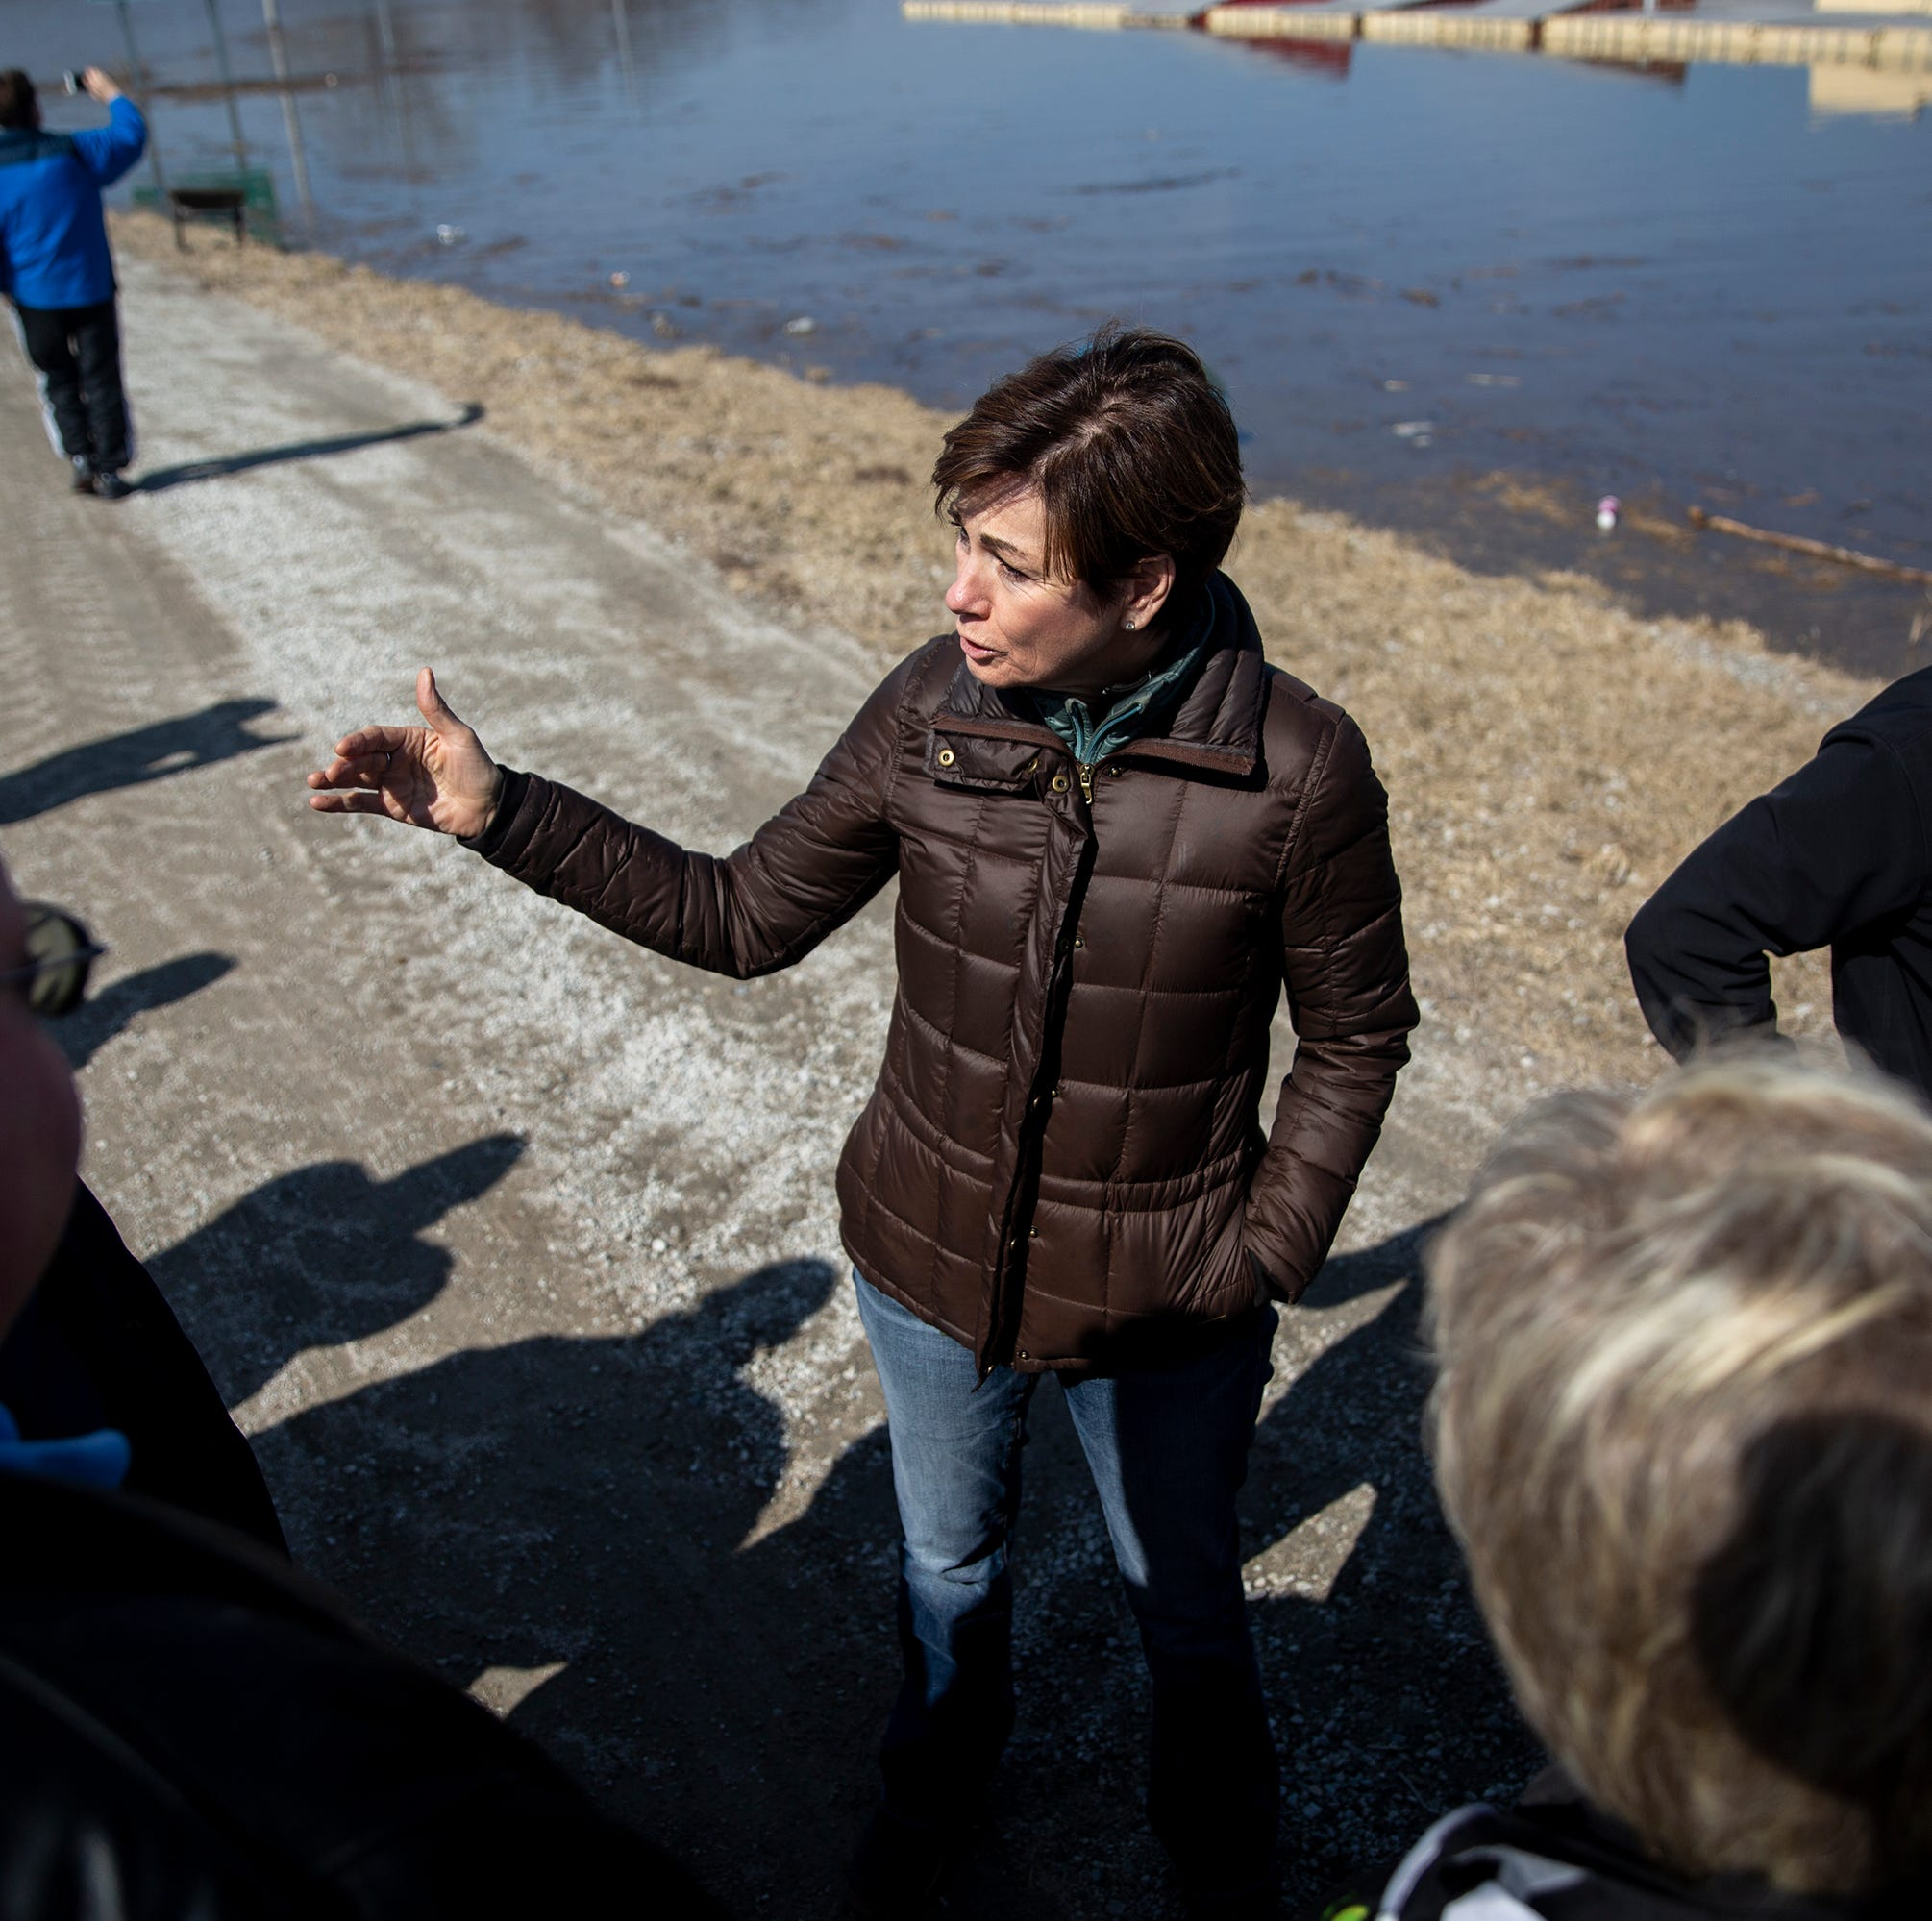 Gov. Kim Reynolds on Iowa flooding: 'It looked like an ocean'